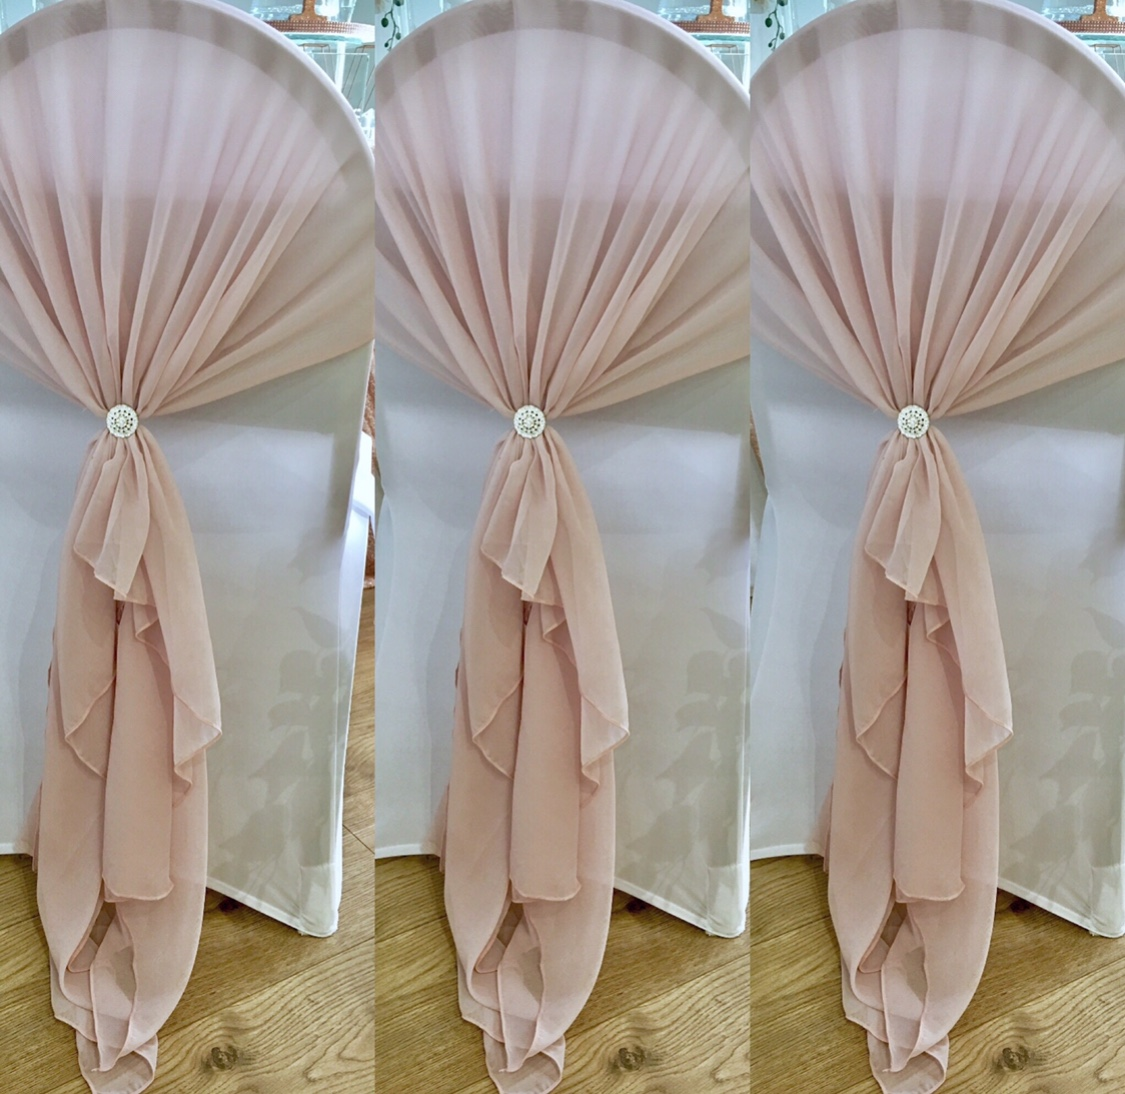 Pale pink chiffon chair drapes